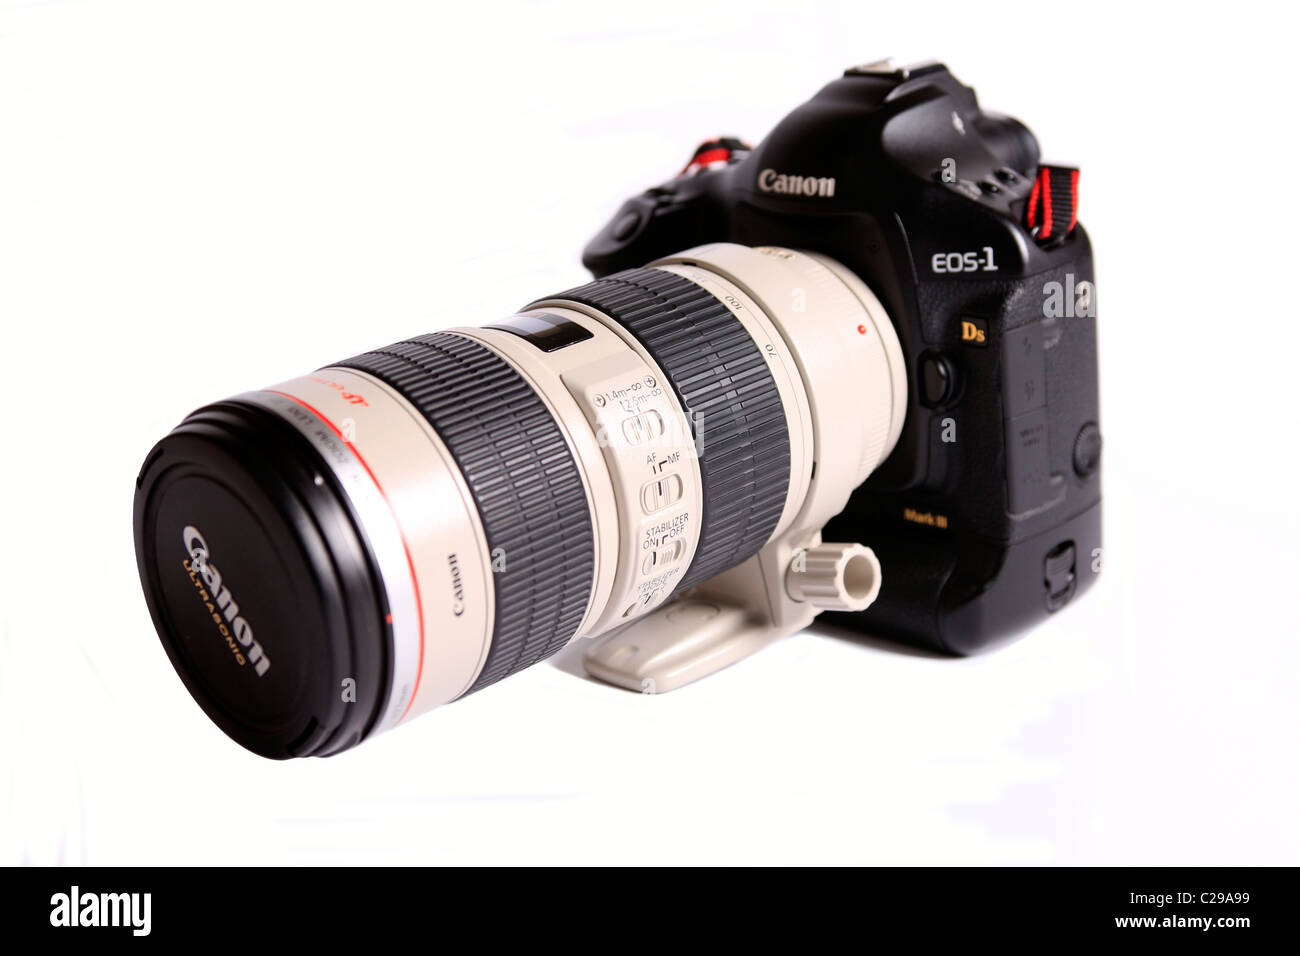 Modern Professional Camera body - Canon EOS 1 Ds Mark III and ...